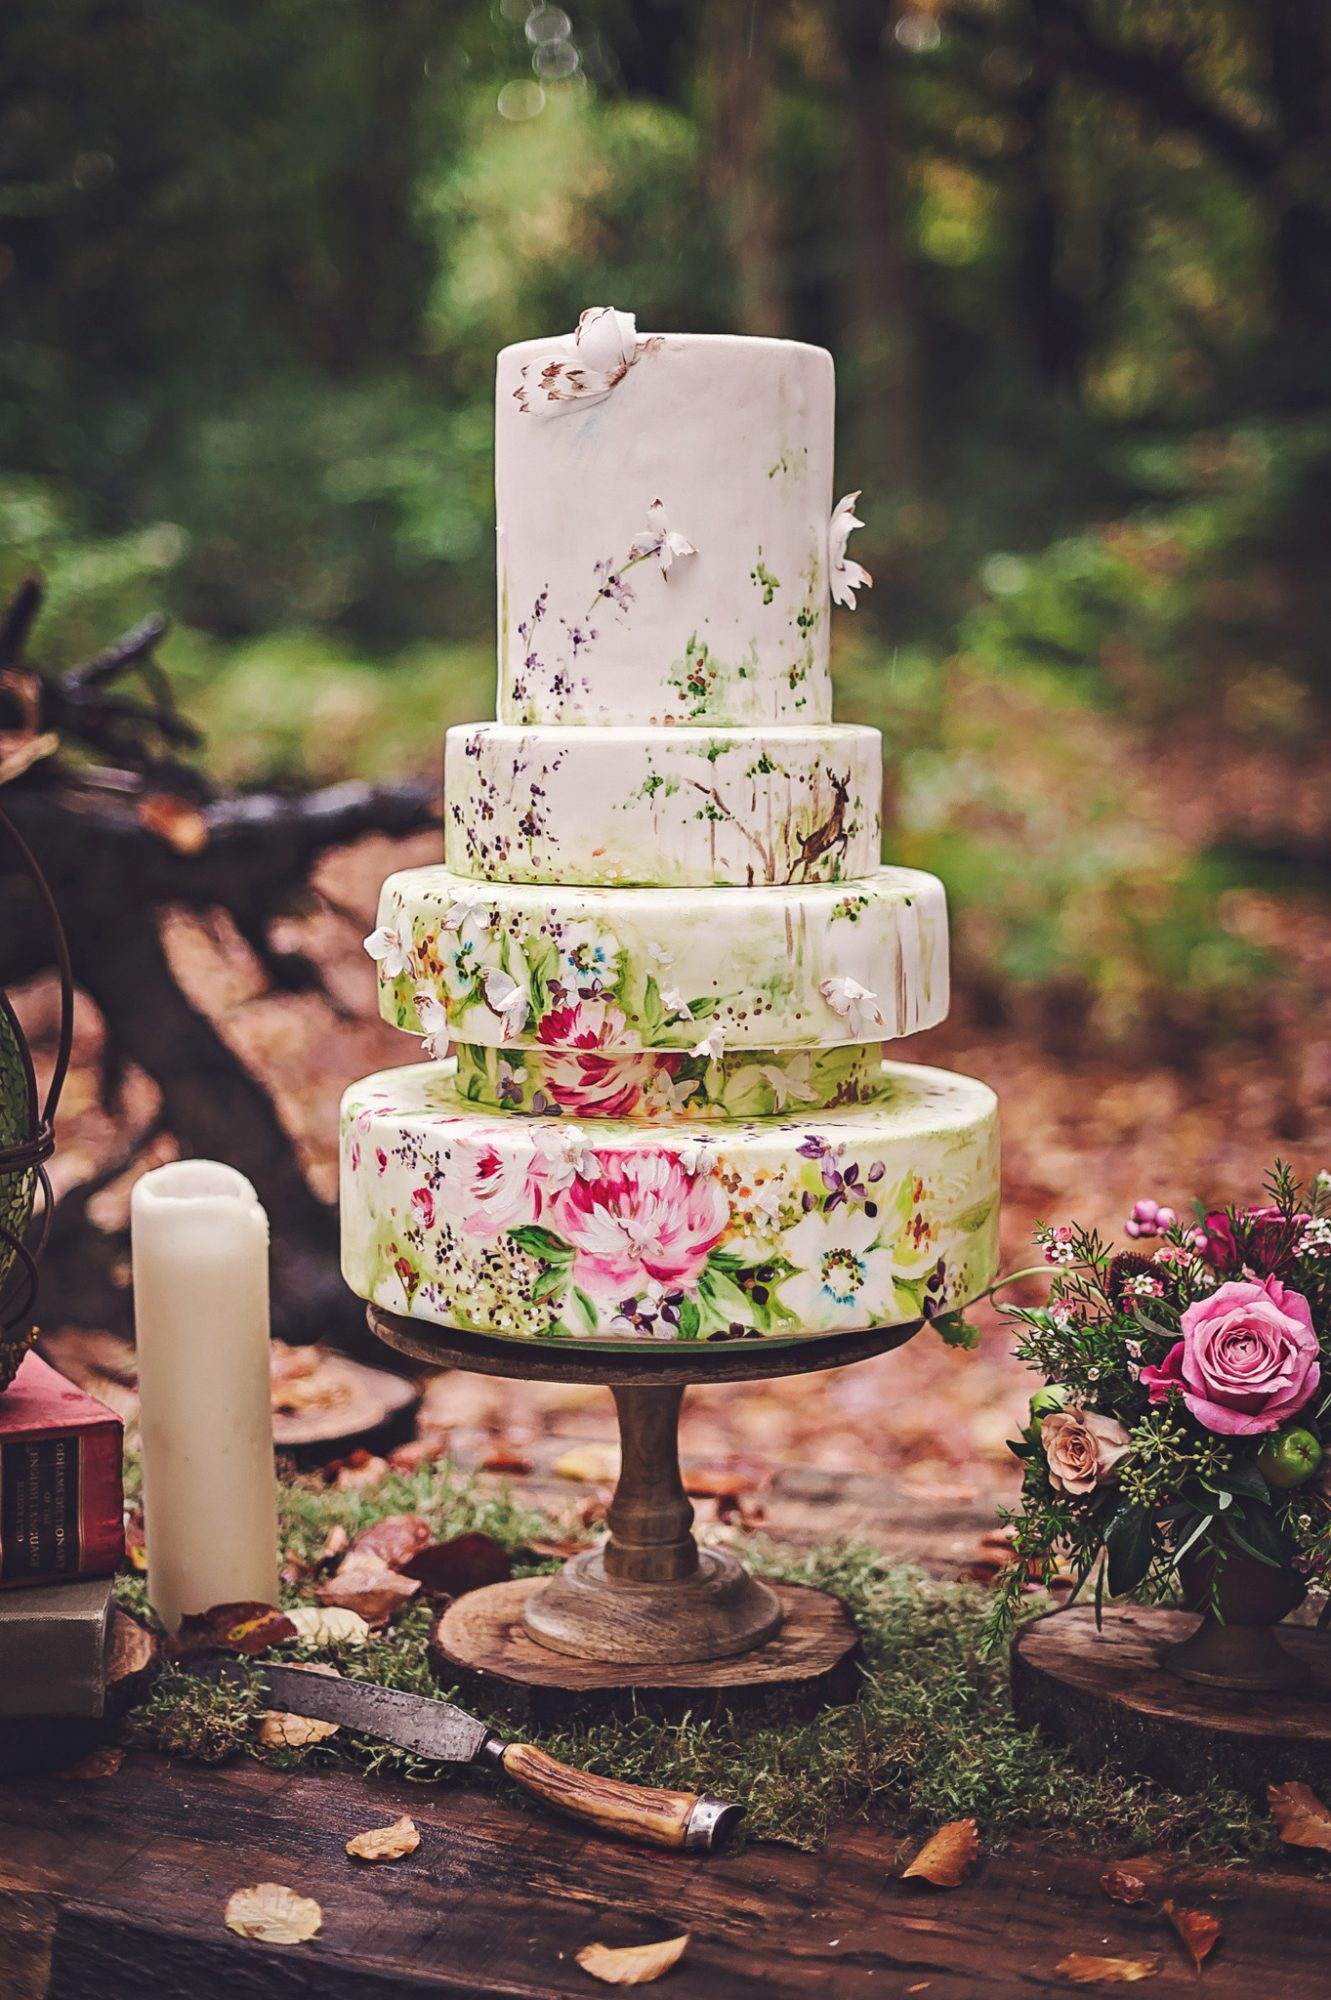 painted wedding cake with flowers